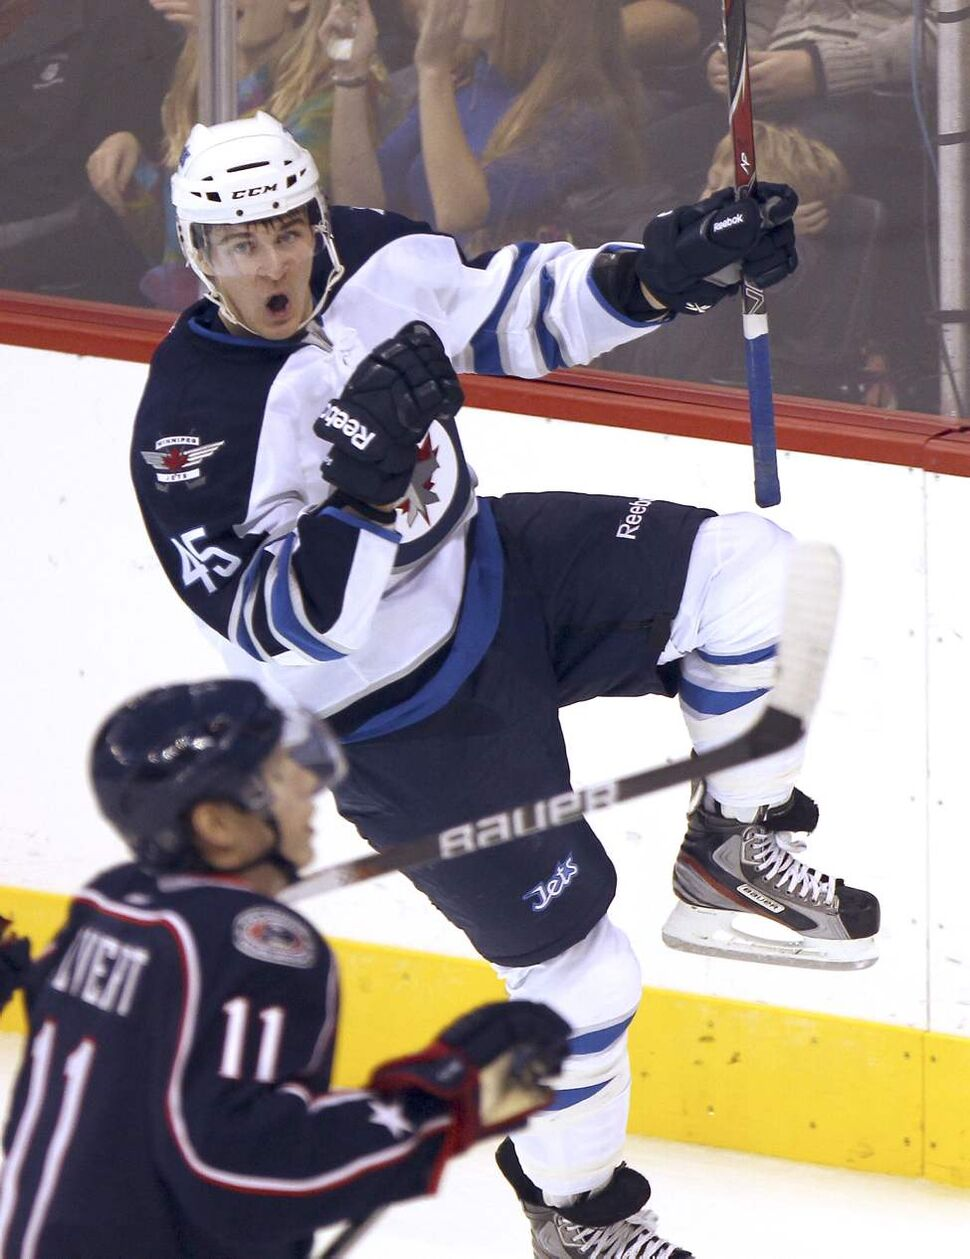 Winnipeg Jets Mark Scheifele celebrates his first period goal against the Columbus Blue Jackets during NHL pre-season action Tuesday night in Winnipeg. Sept 20, 2011   (JOE BRYKSA / WINNIPEG FREE PRESS)